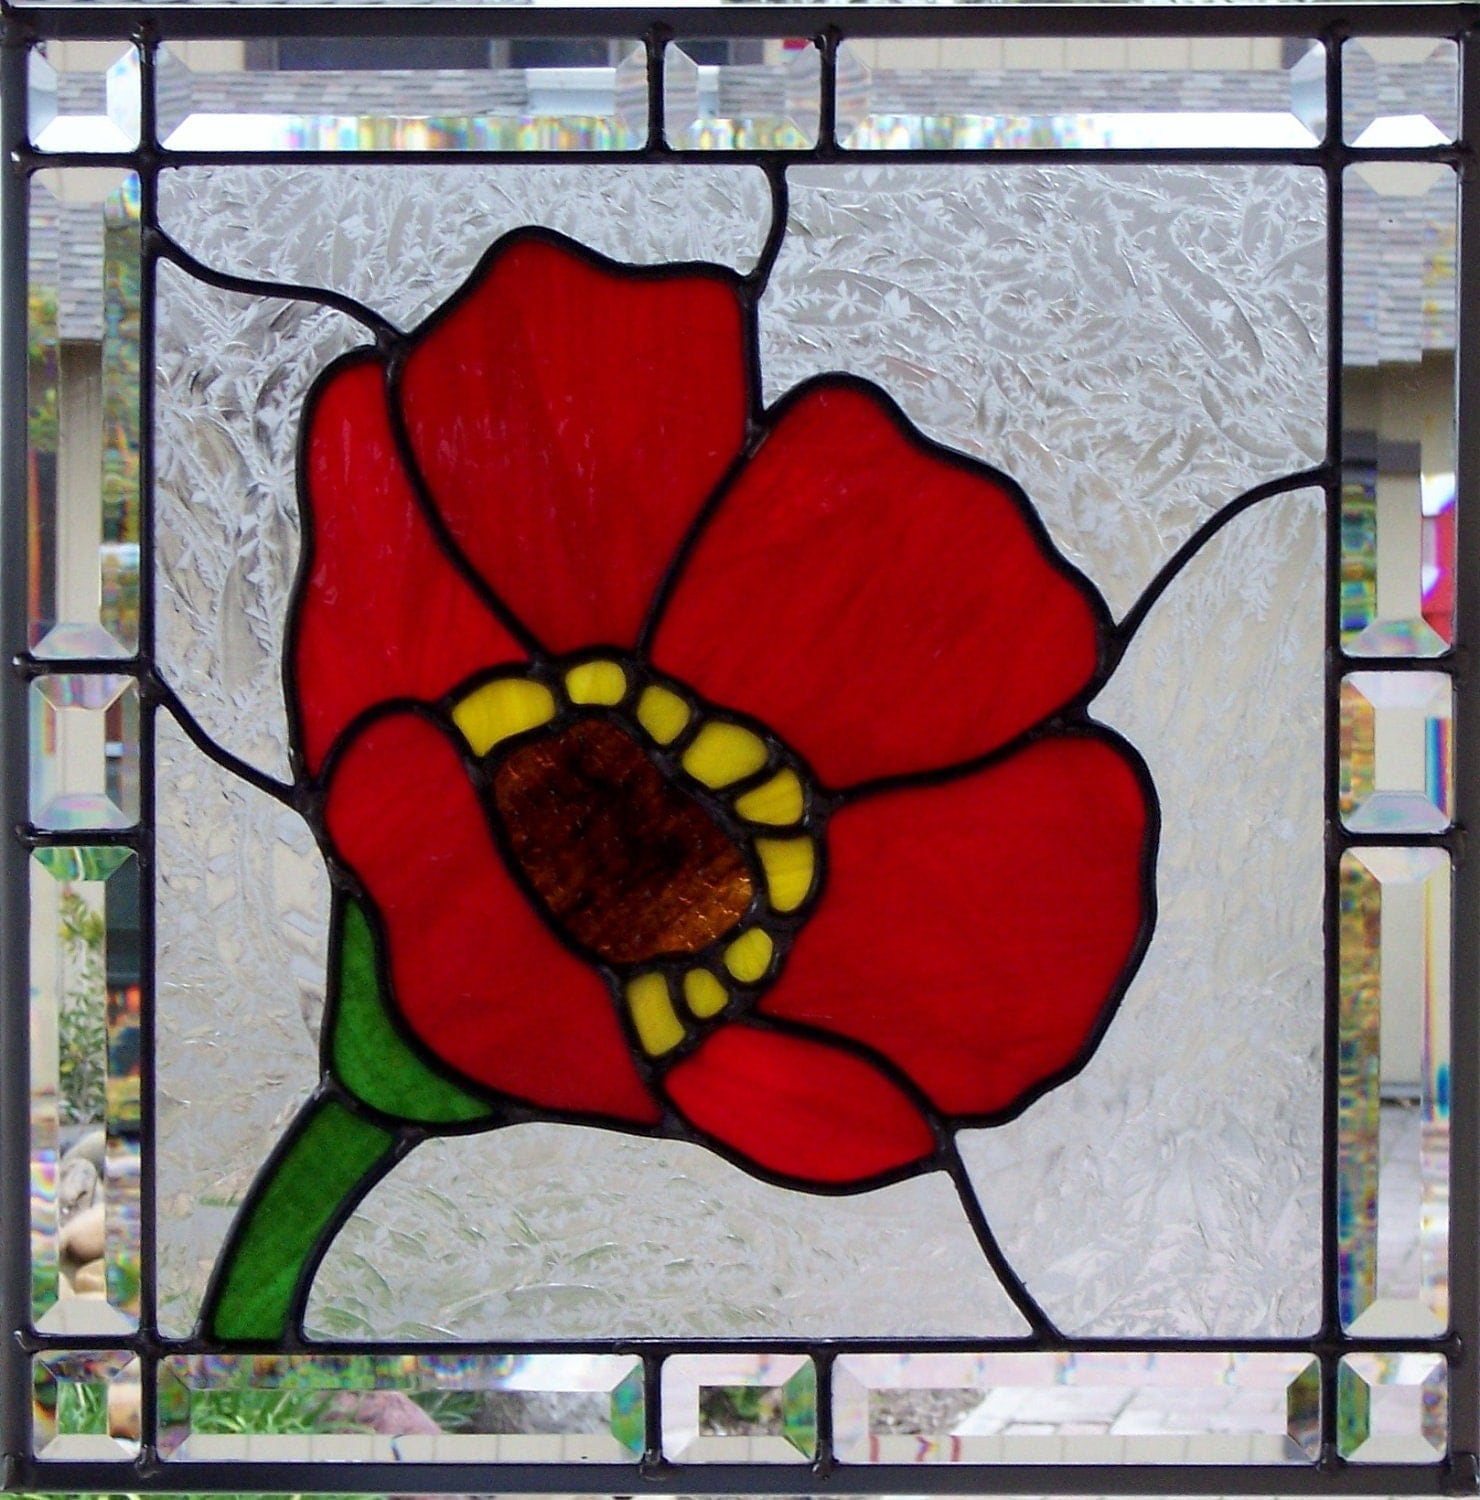 Red Stained Glass : Red poppy stained glass window